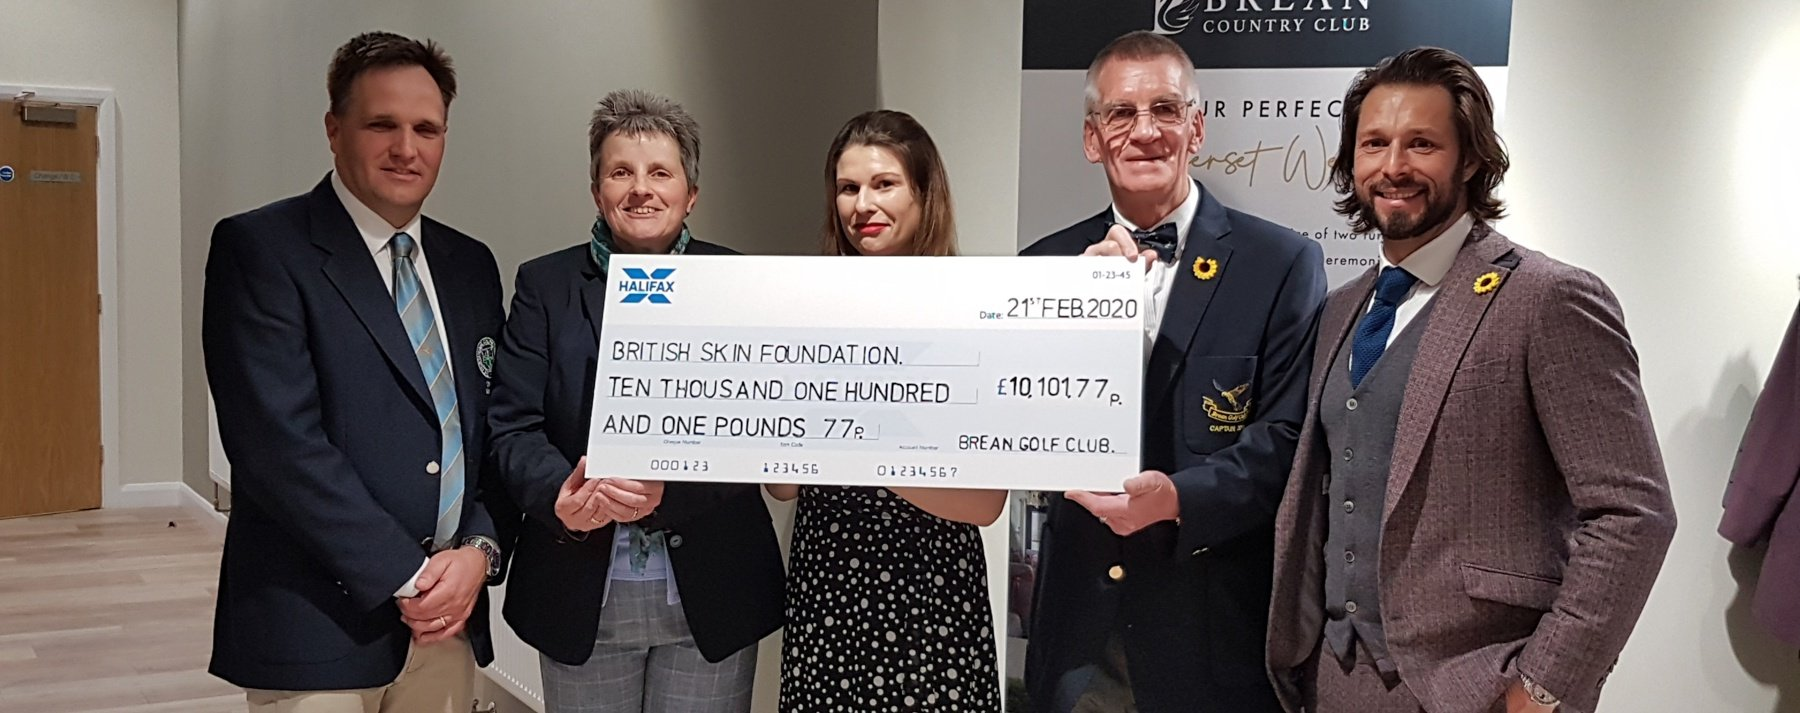 Brean Golf Club donates over £10,000 to skin cancer research